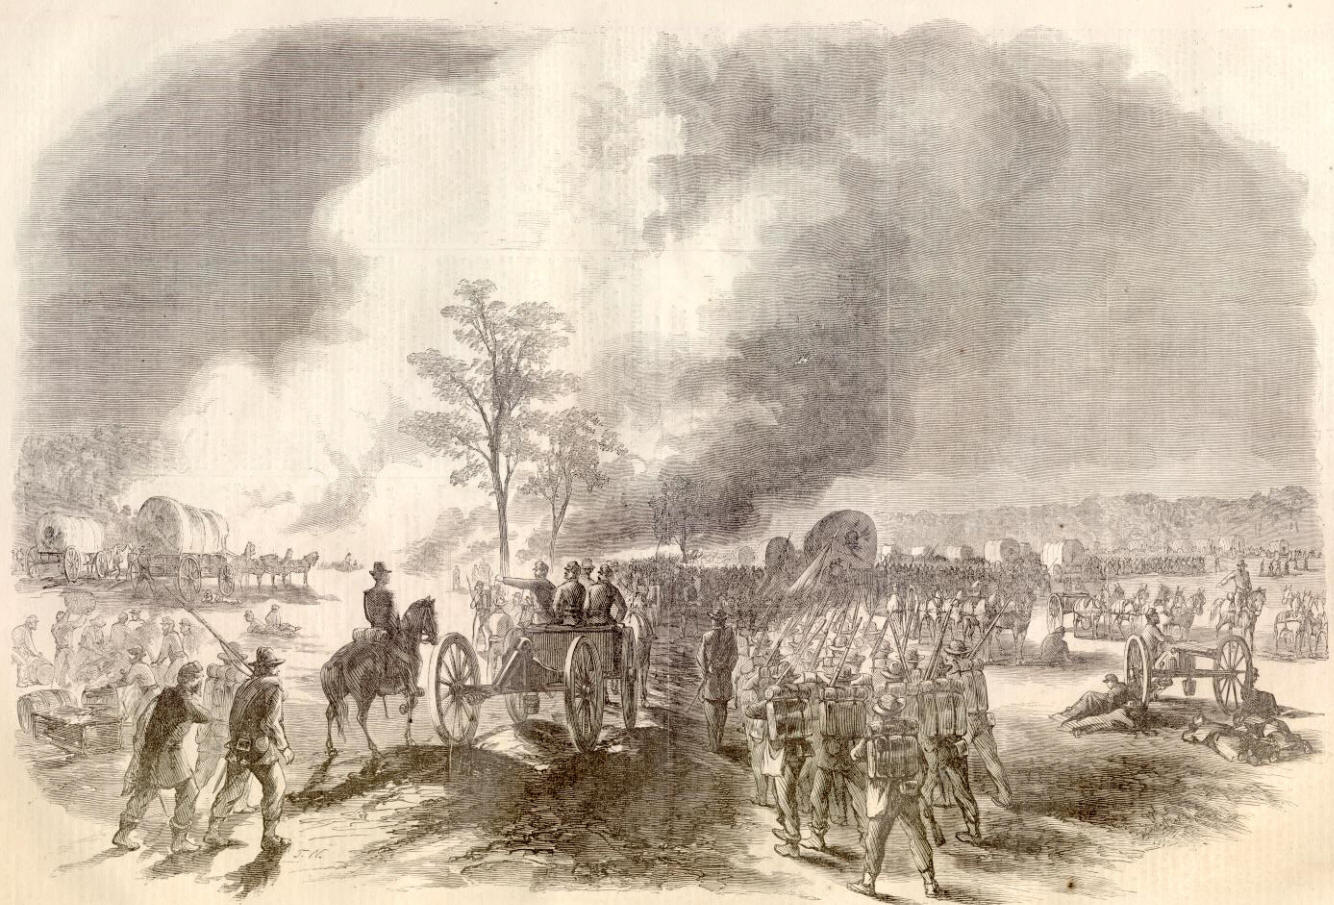 This sketch, done during the battle, depicts General Franklin of the Union army and his VI (6th) Corps retreating in the face of massive assaults.